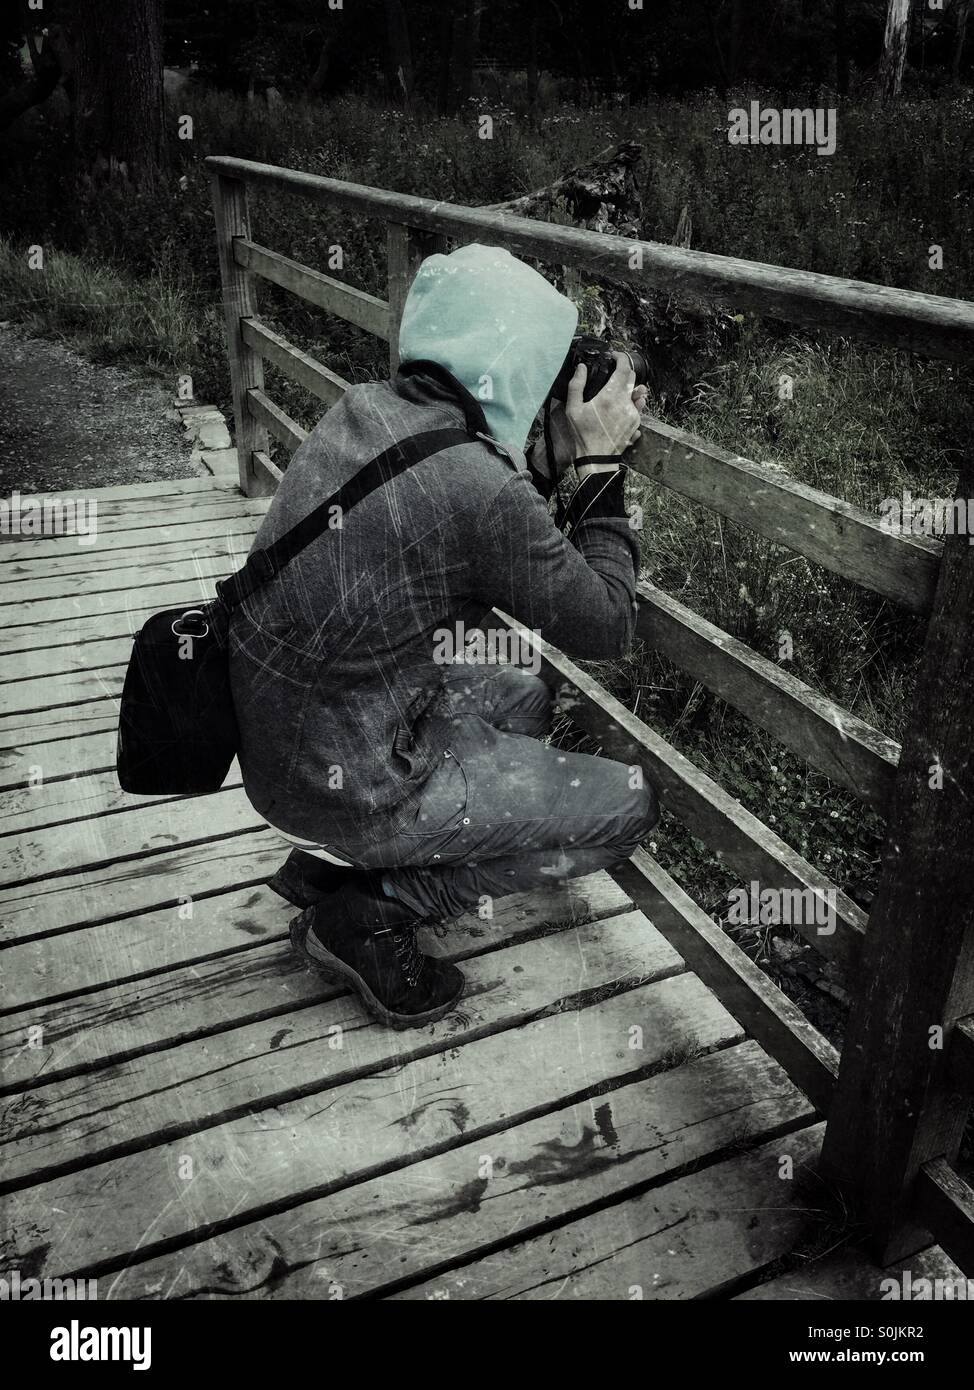 Photographer taking an image - Stock Image